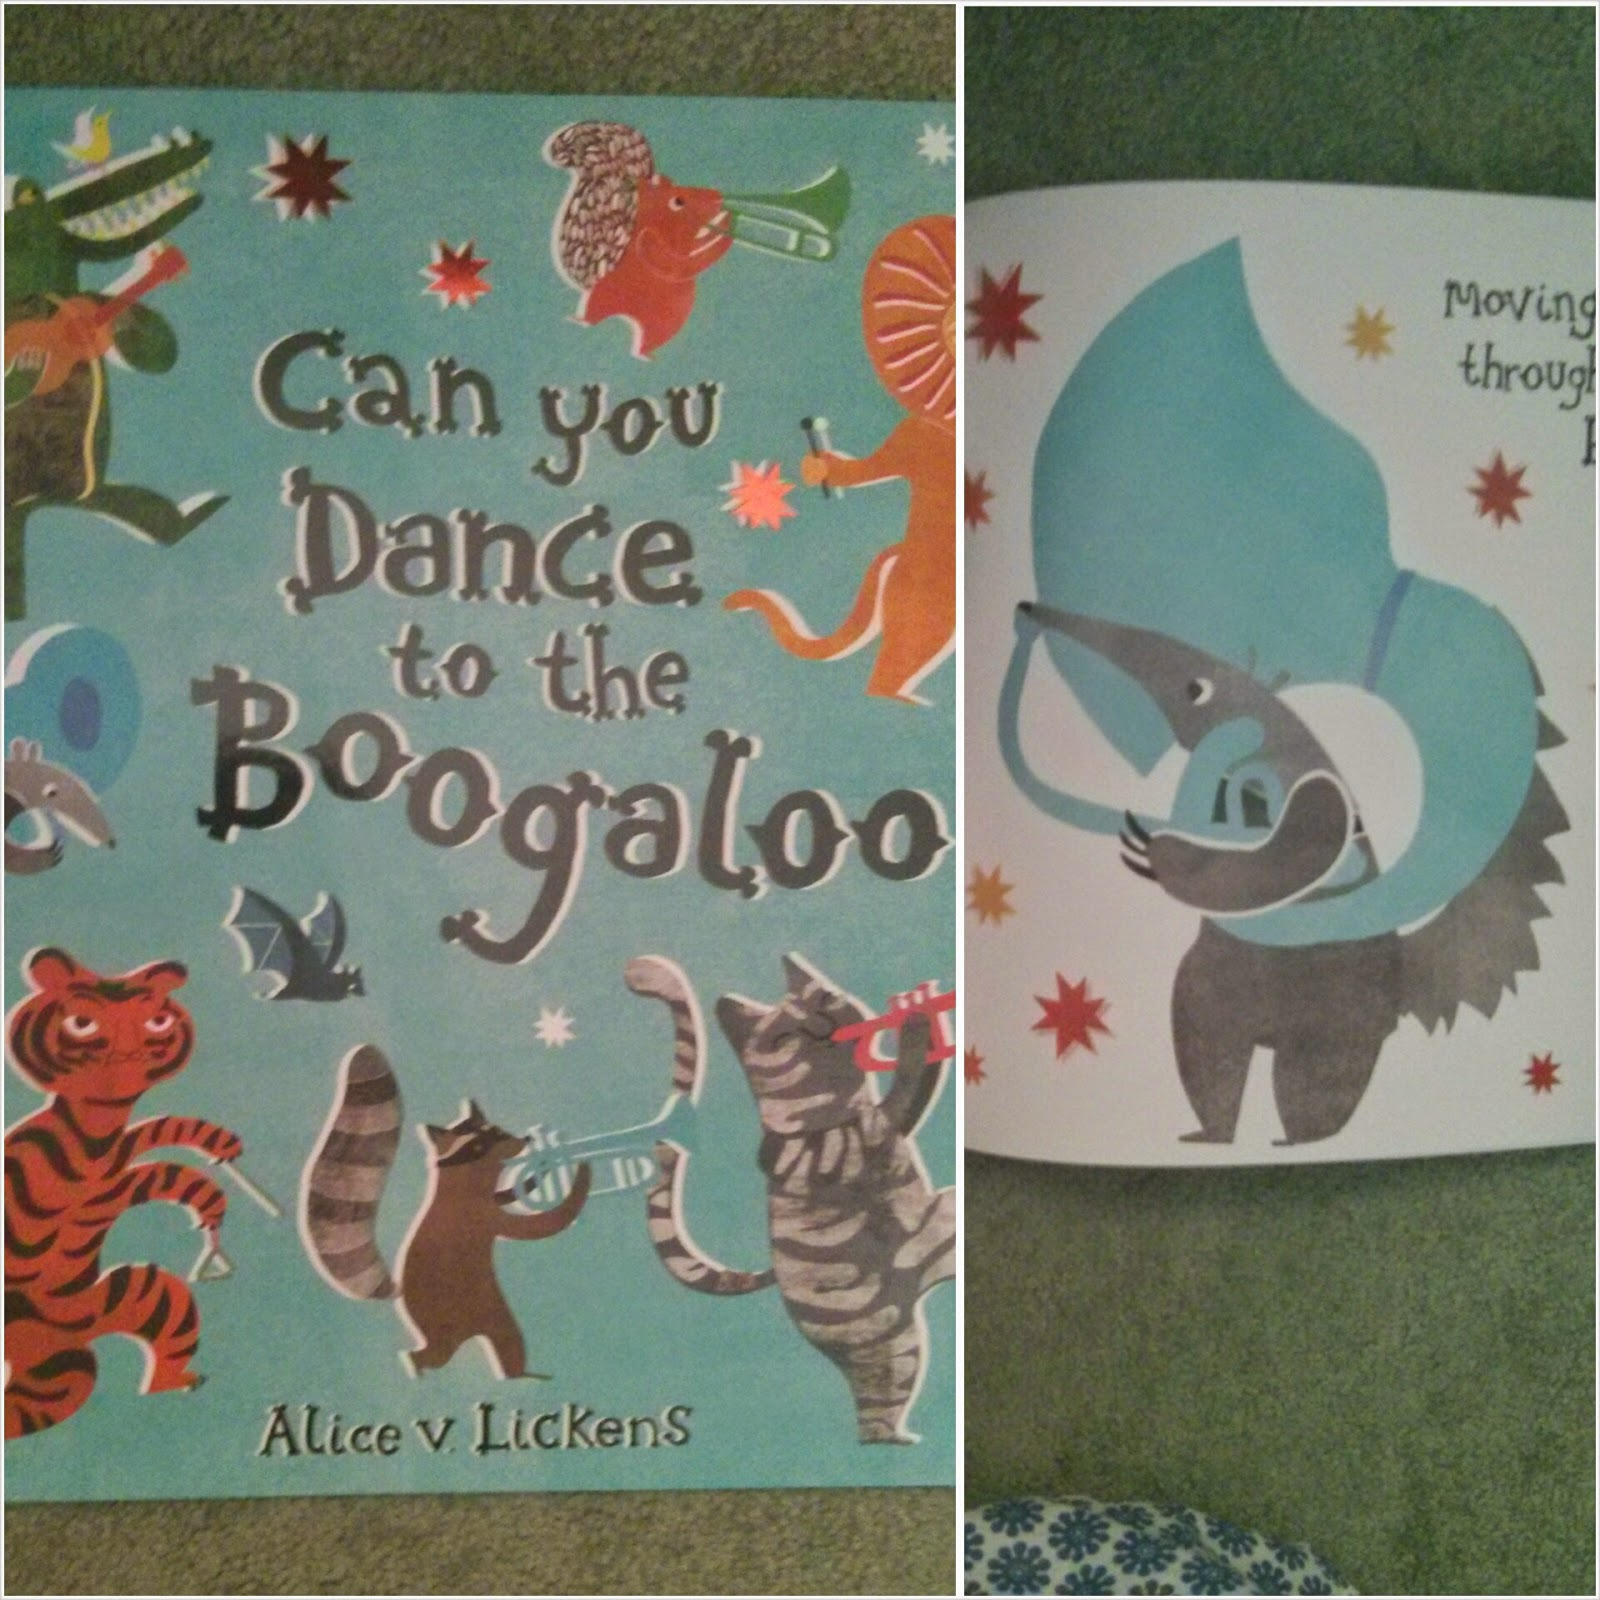 Can You Dance to the Boogaloo Review